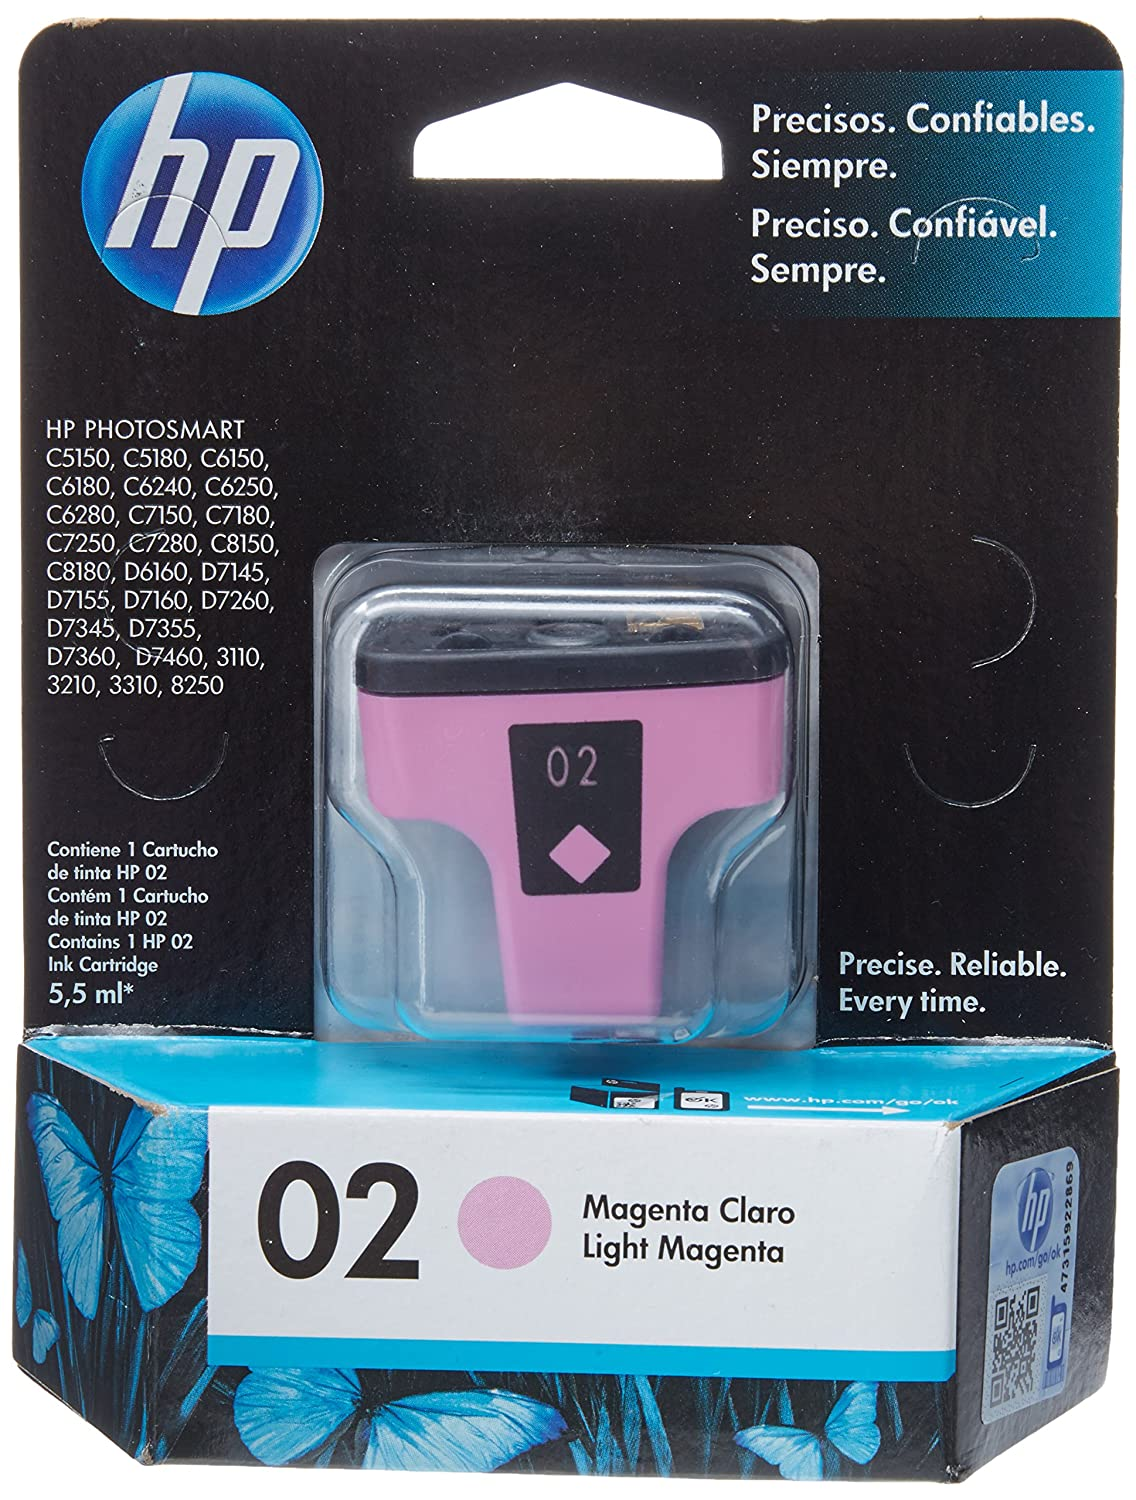 HP 02 Light Magenta Ink Cartridge, 10-80%, -40-158 °C, 5-40 °C, 10 ...